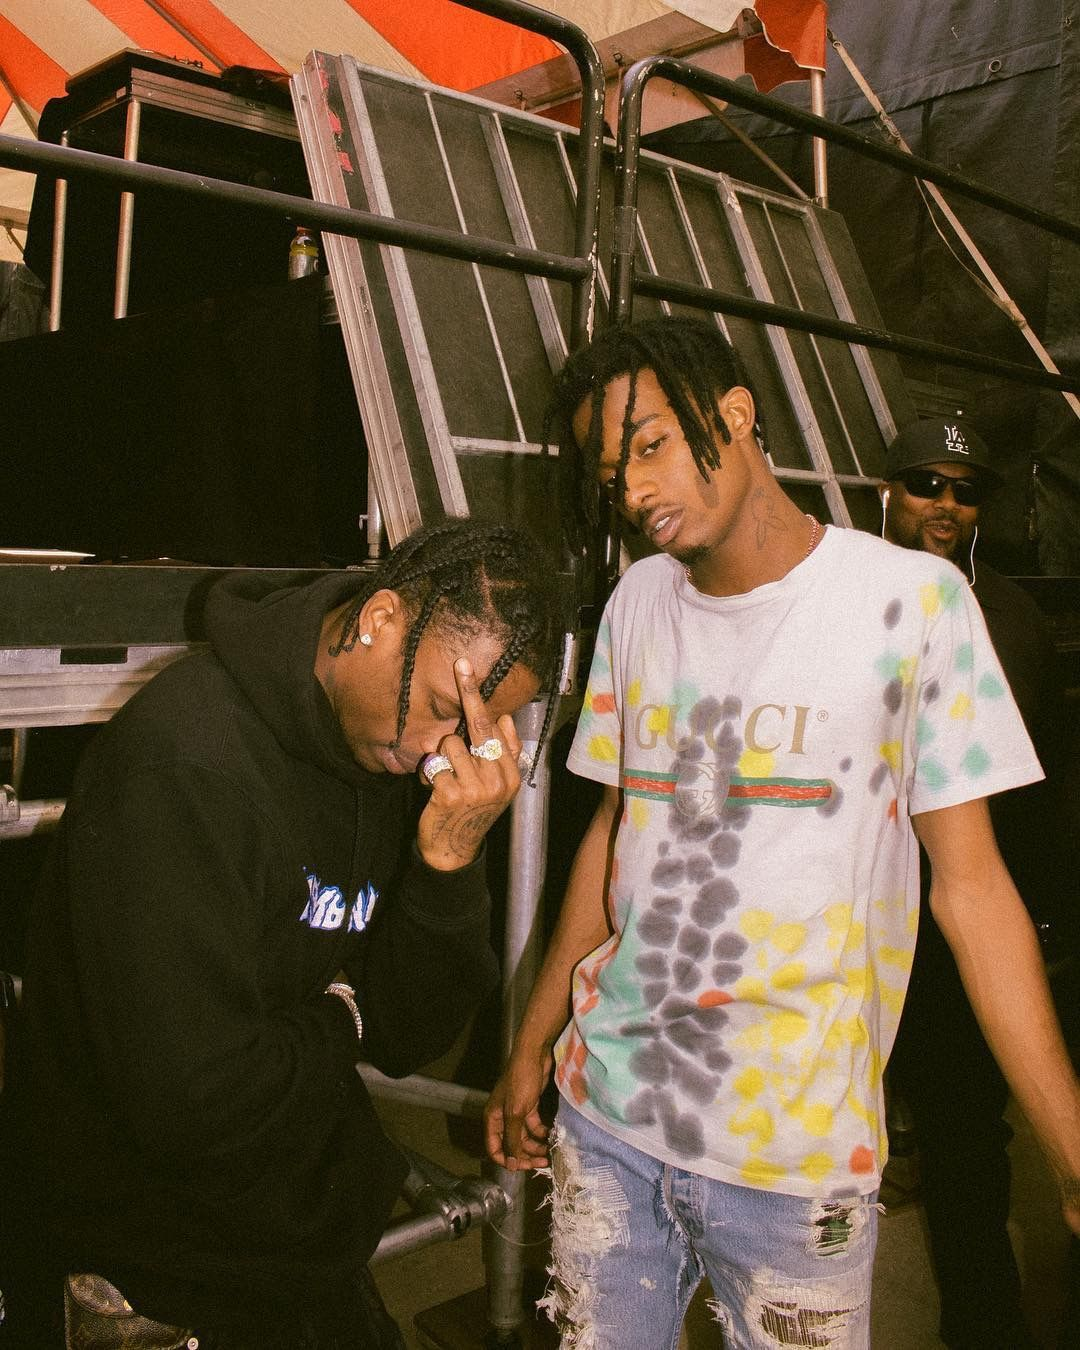 travis scott hangs with playboi carti wearing his new richie rich